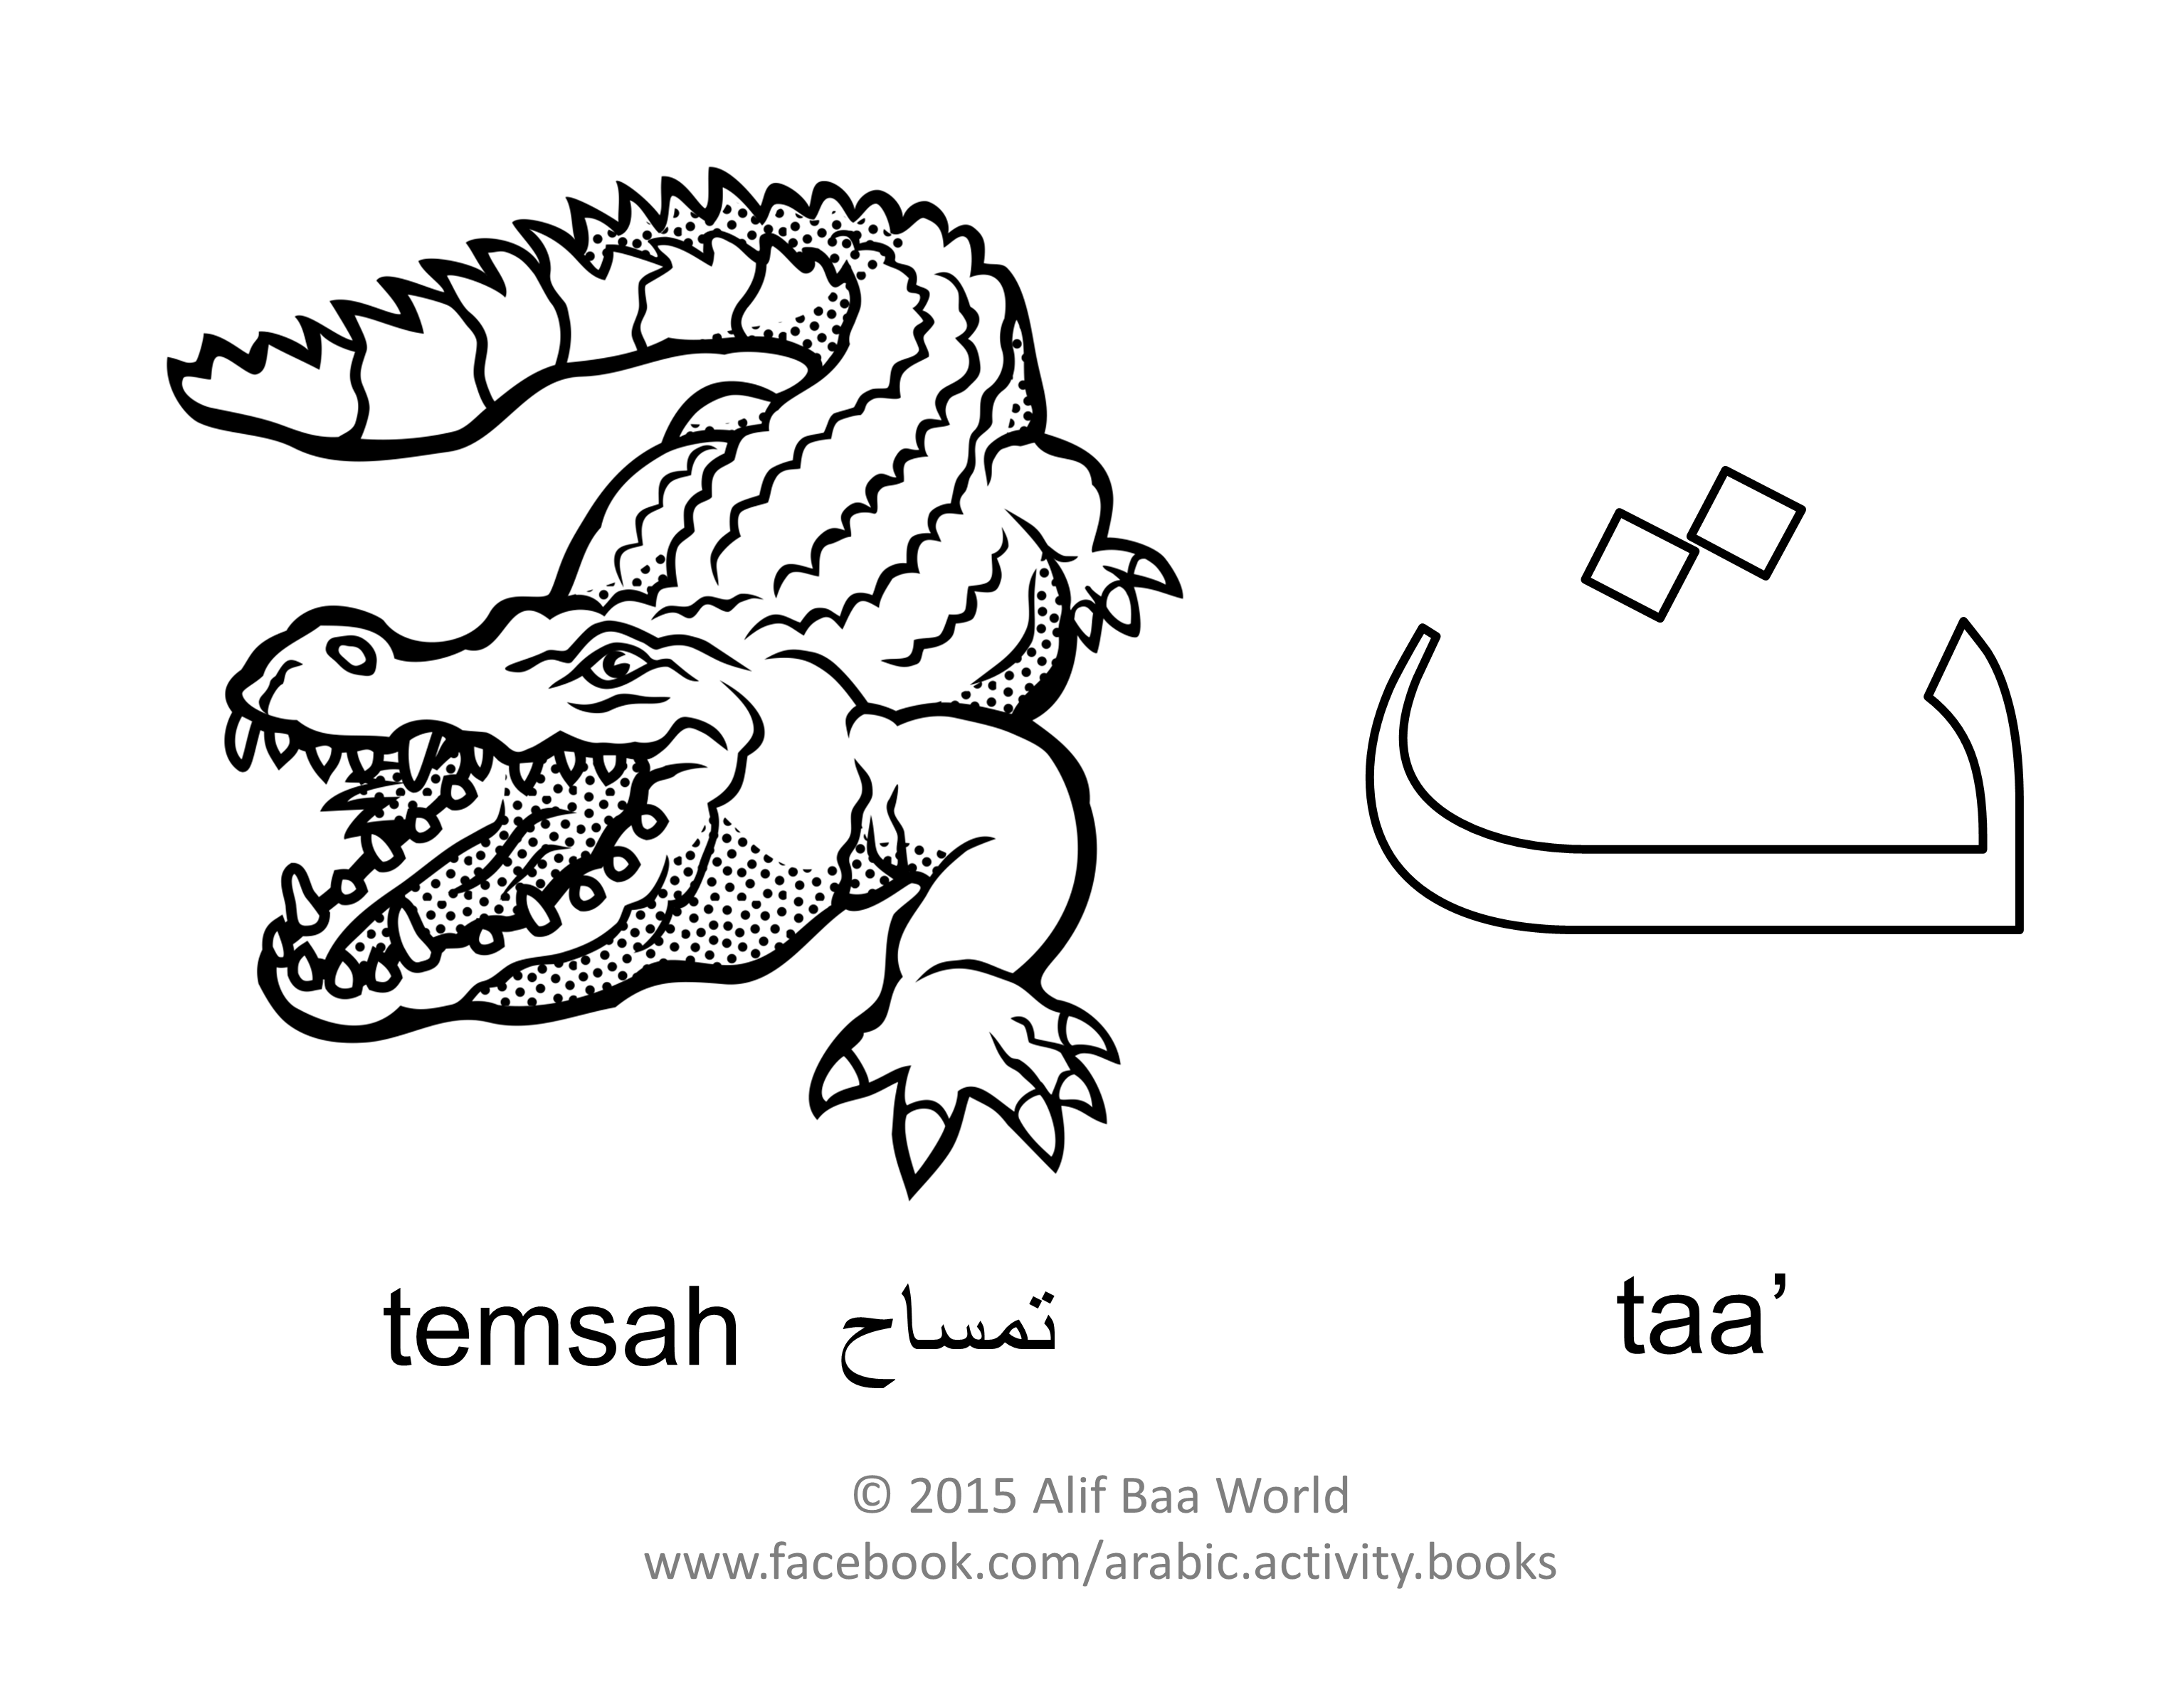 The Third Letter Of The Arabic Alphabet Is Name Taa